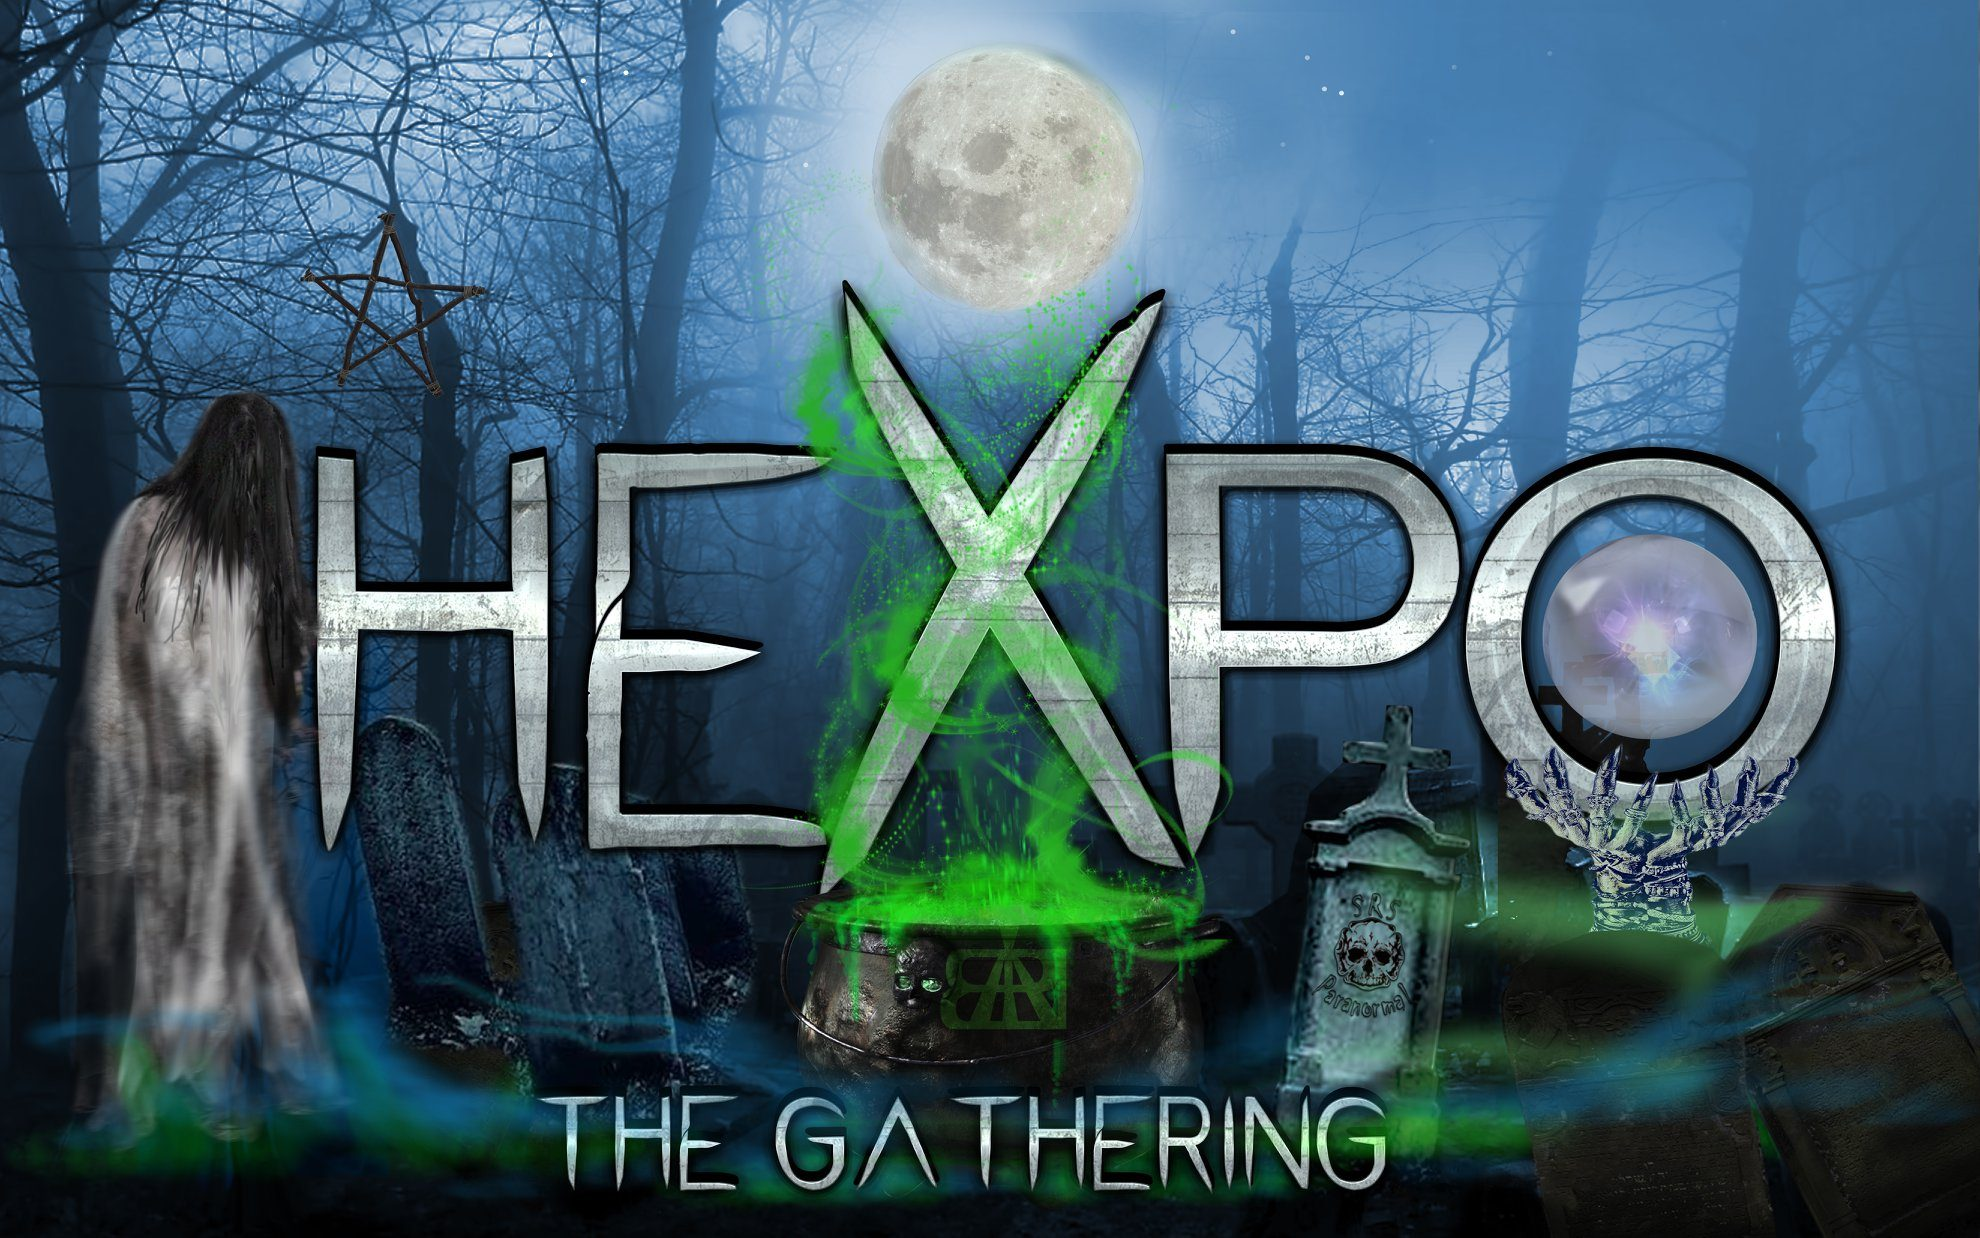 HeXpo, The Gathering